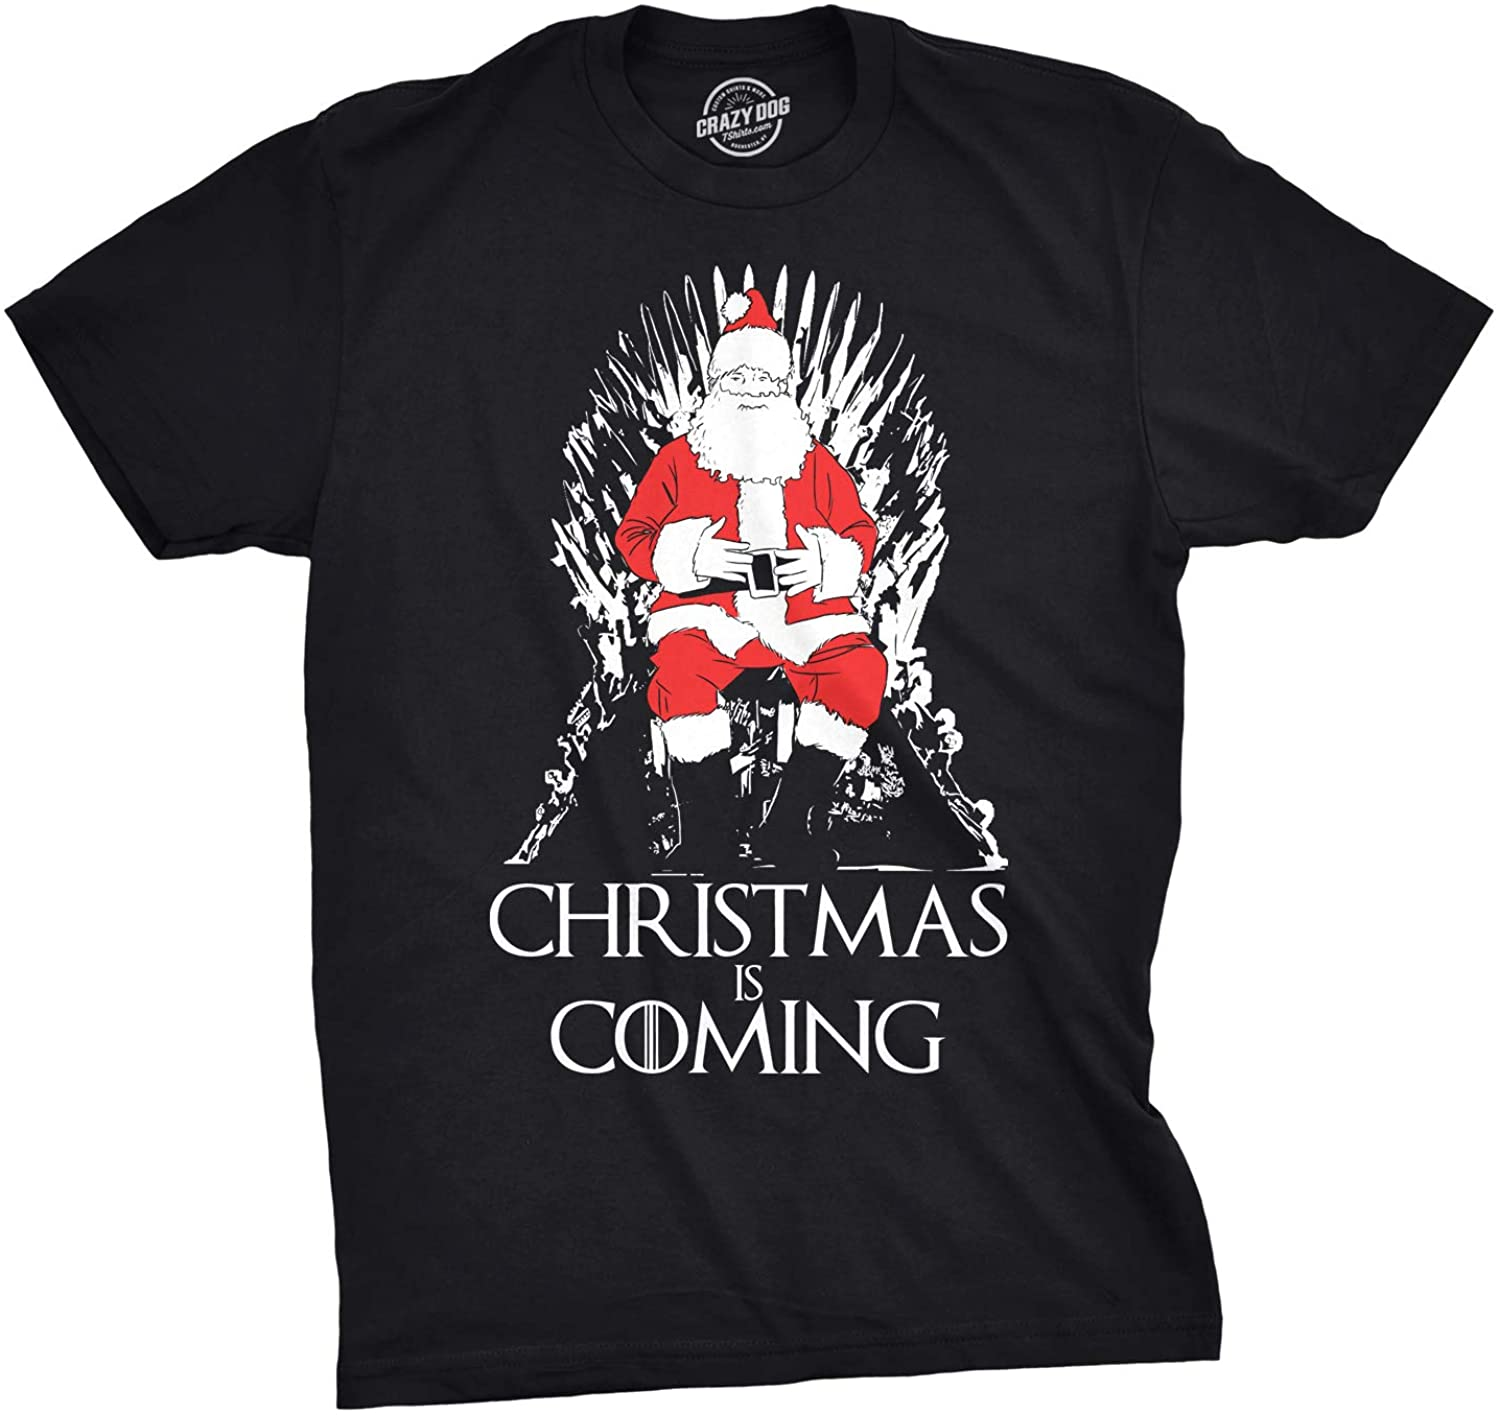 Mens Christmas is Coming Santa Claus Funny Sarcastic Novelty Top Hilarious Tee